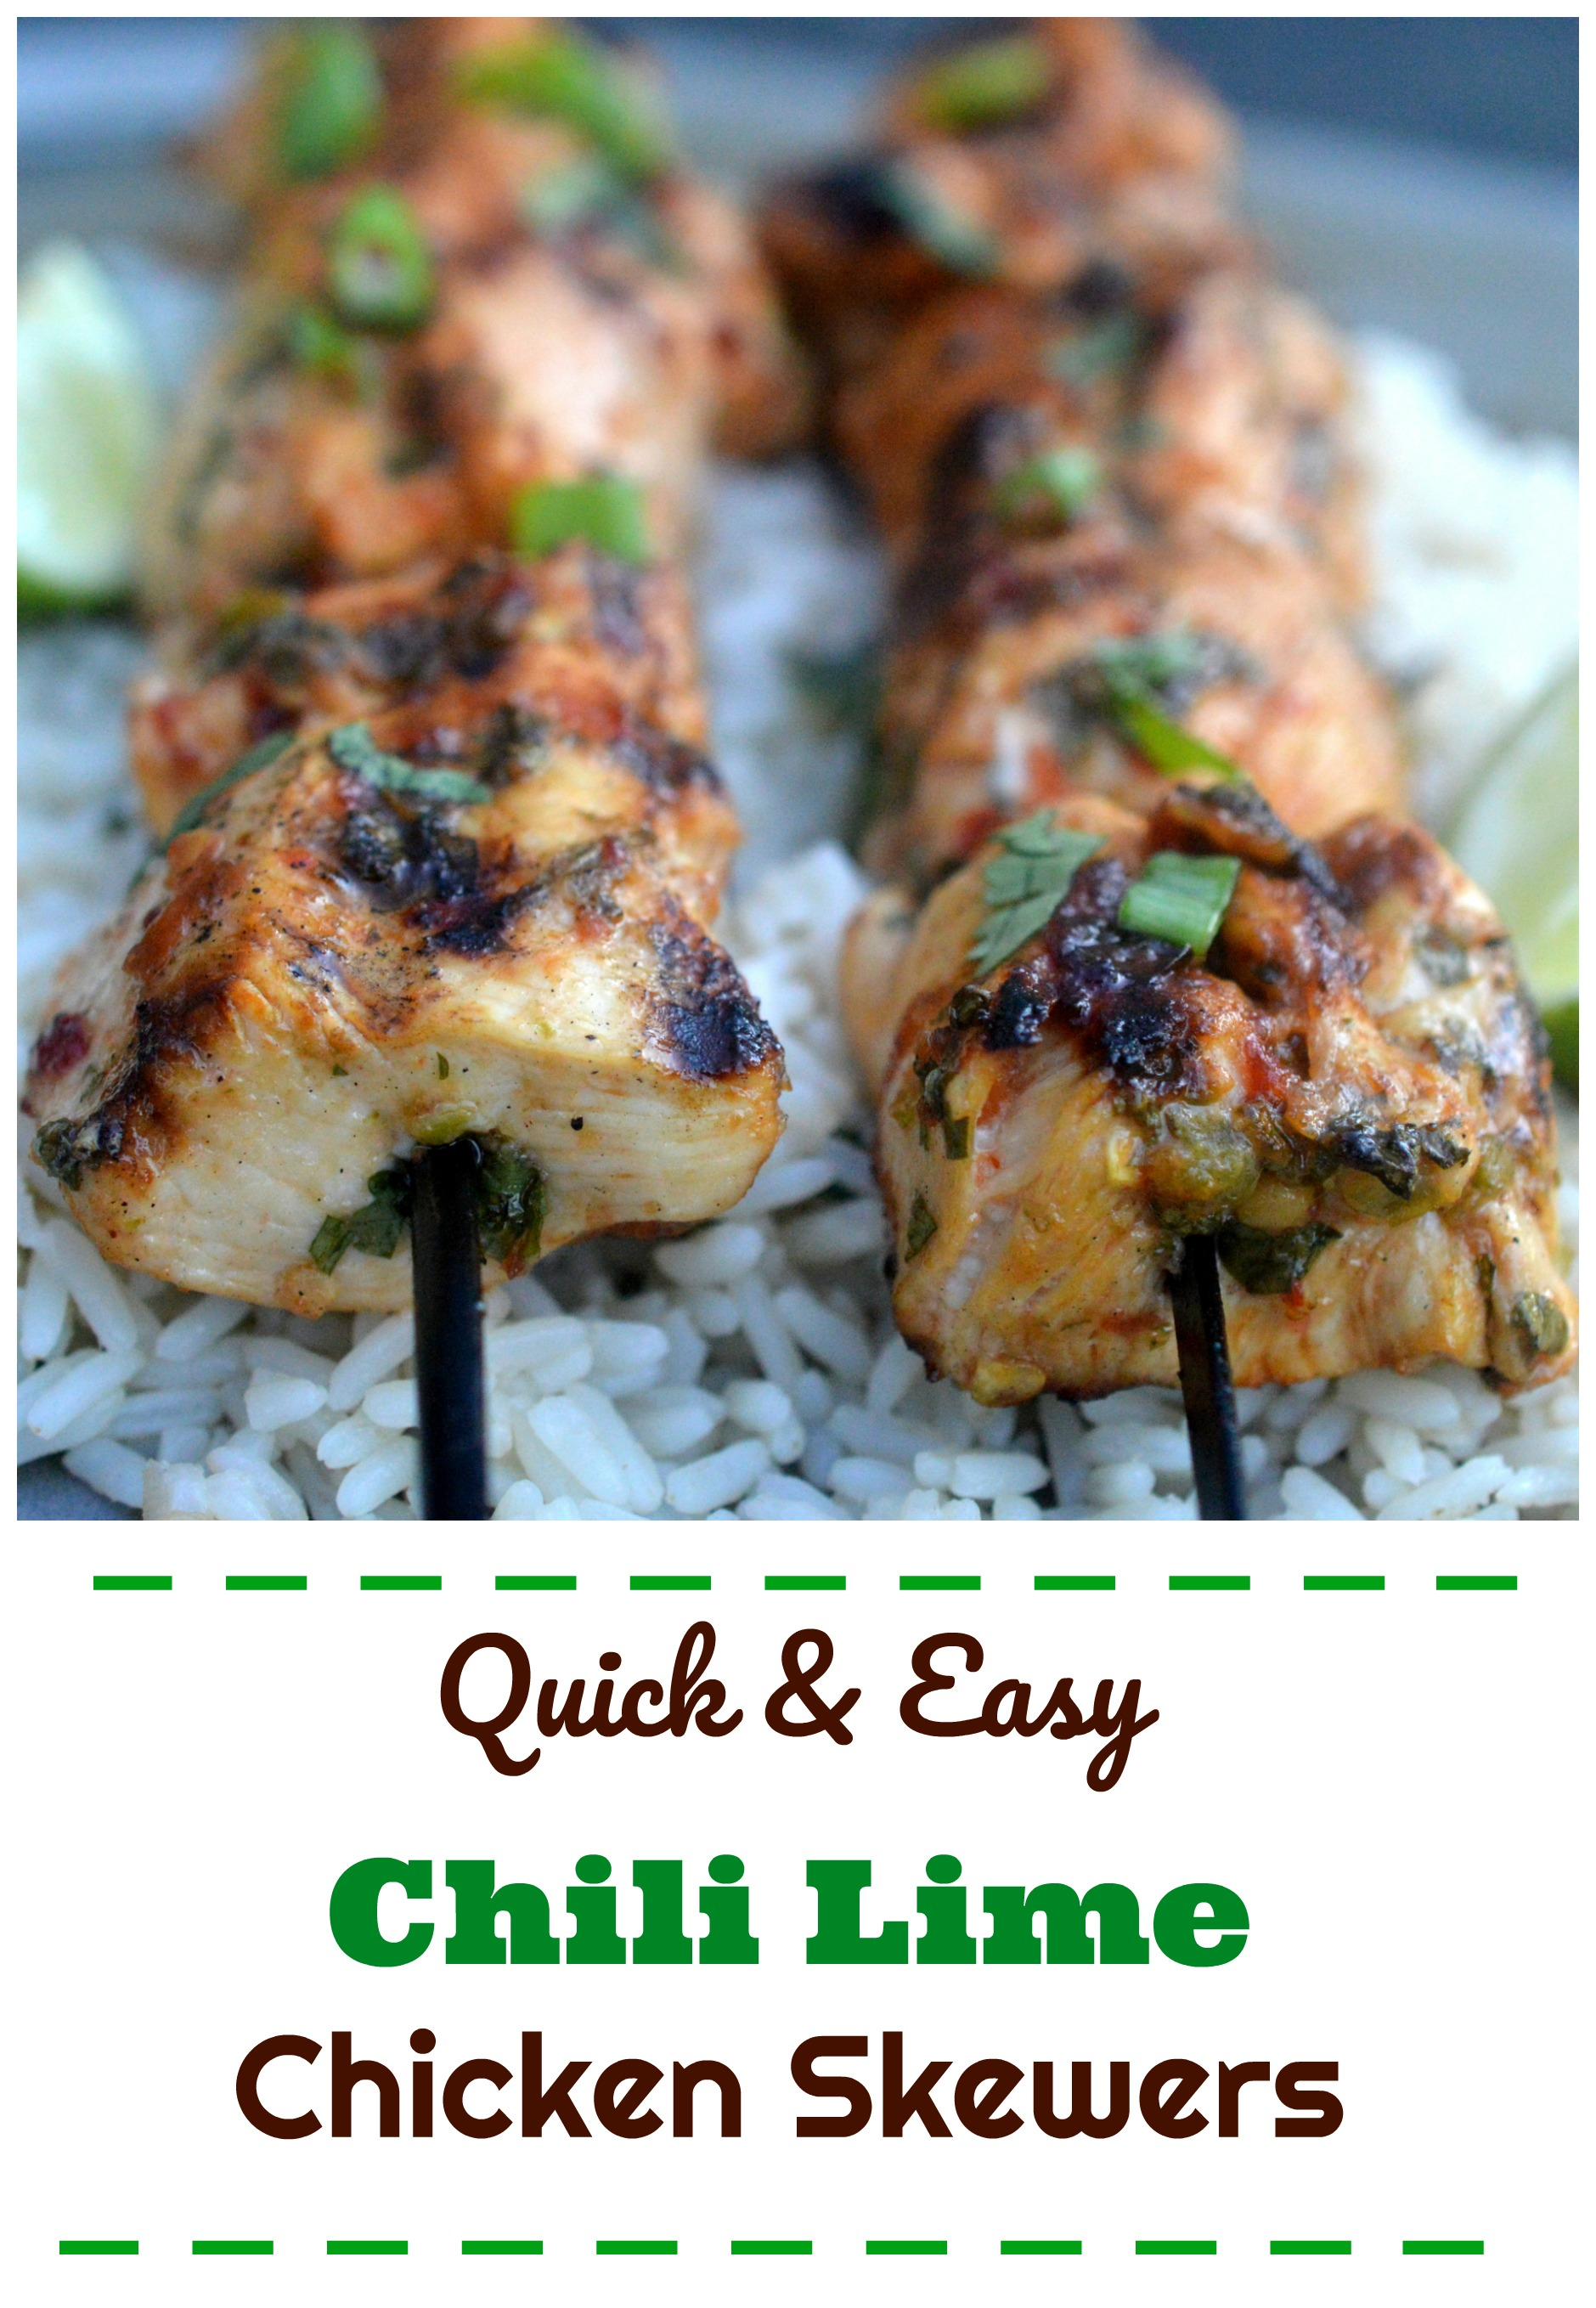 Quick & Easy Grilled Chili Lime Chicken Skewers